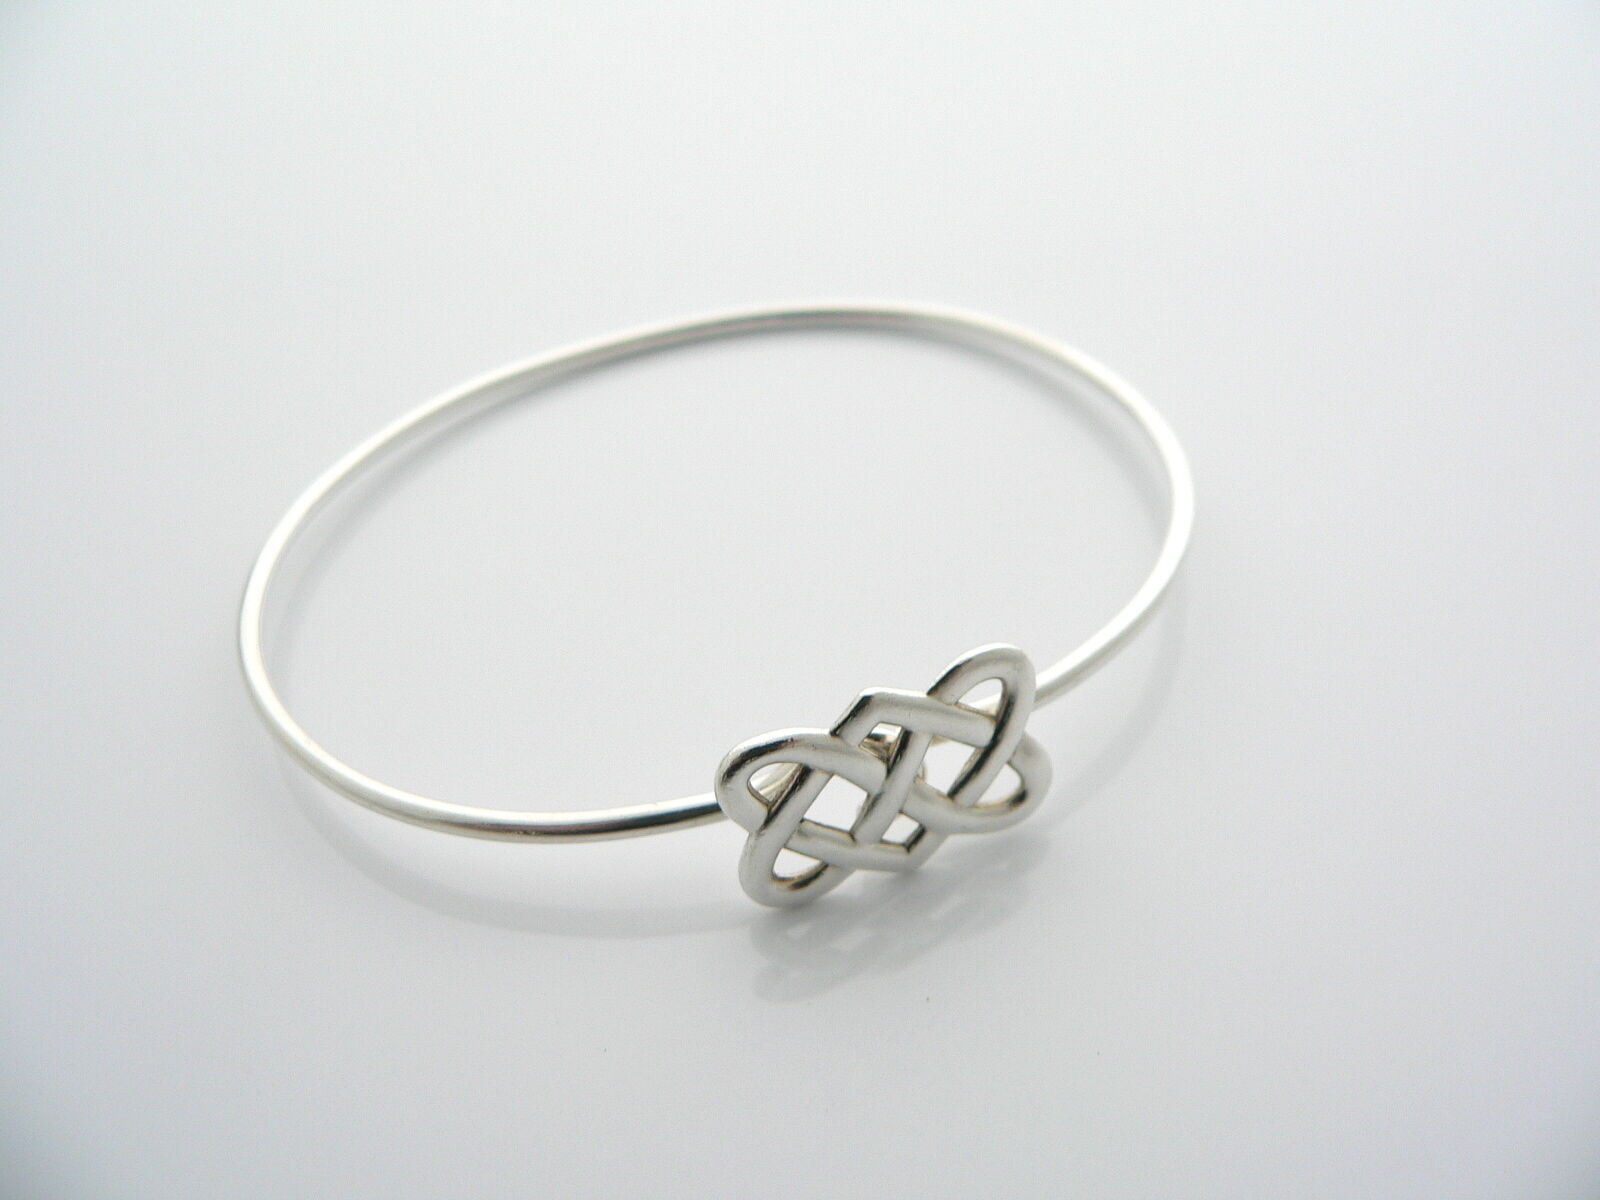 Tiffany & Co Silver Picasso Celtic Knot Bangle Bracelet Rare Gift Love